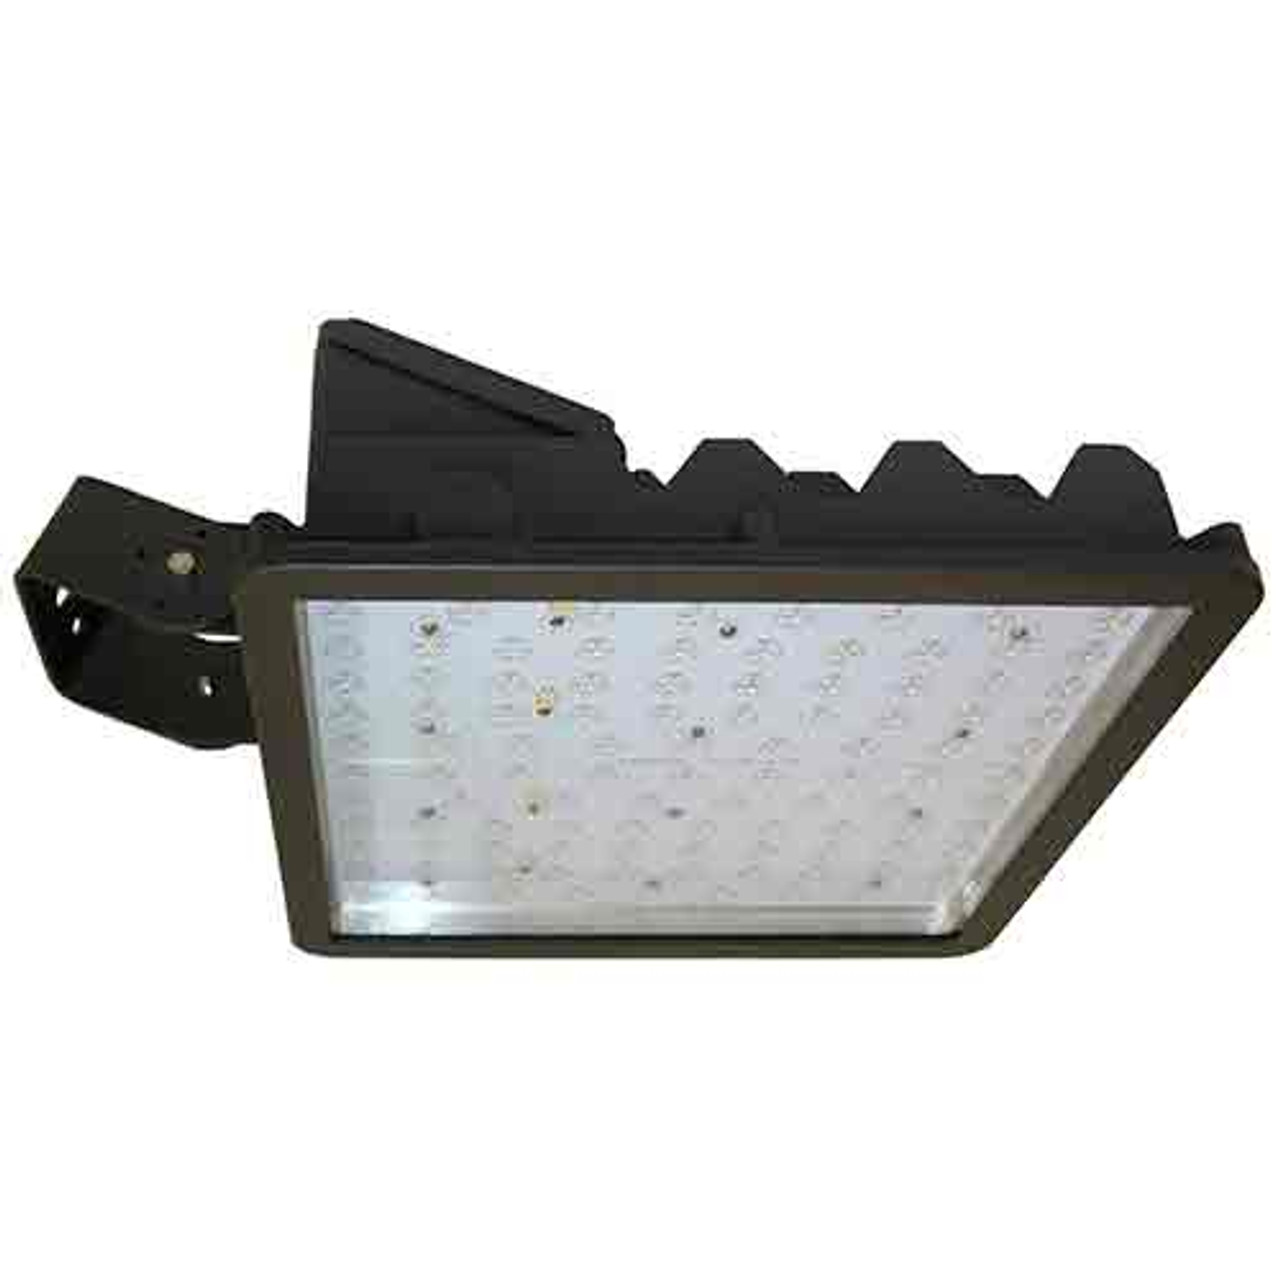 262 Watt LED Area Light 26,264 Lumens with bracket mount